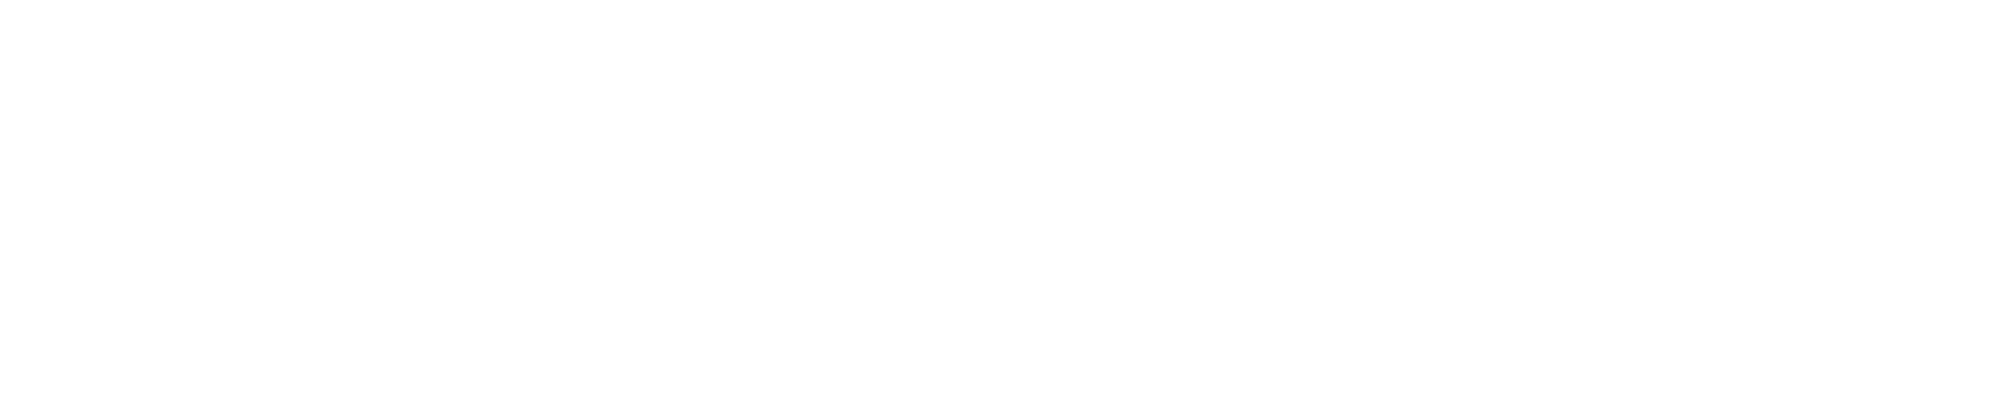 NEUESDIGITAL | Digital Branding & Security